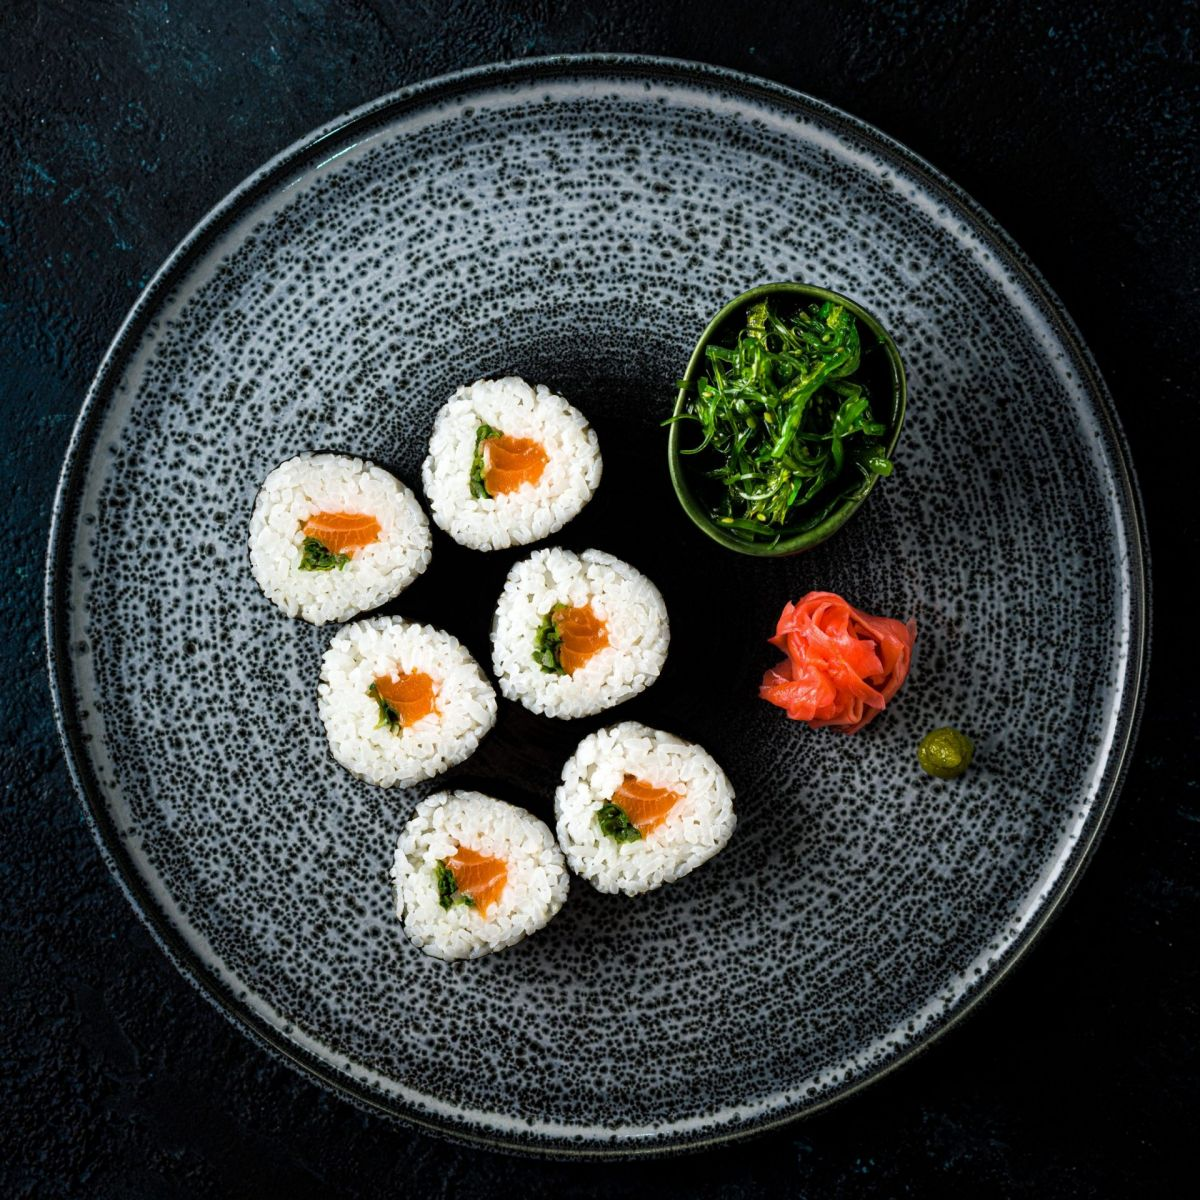 plate of salmon sushi from above